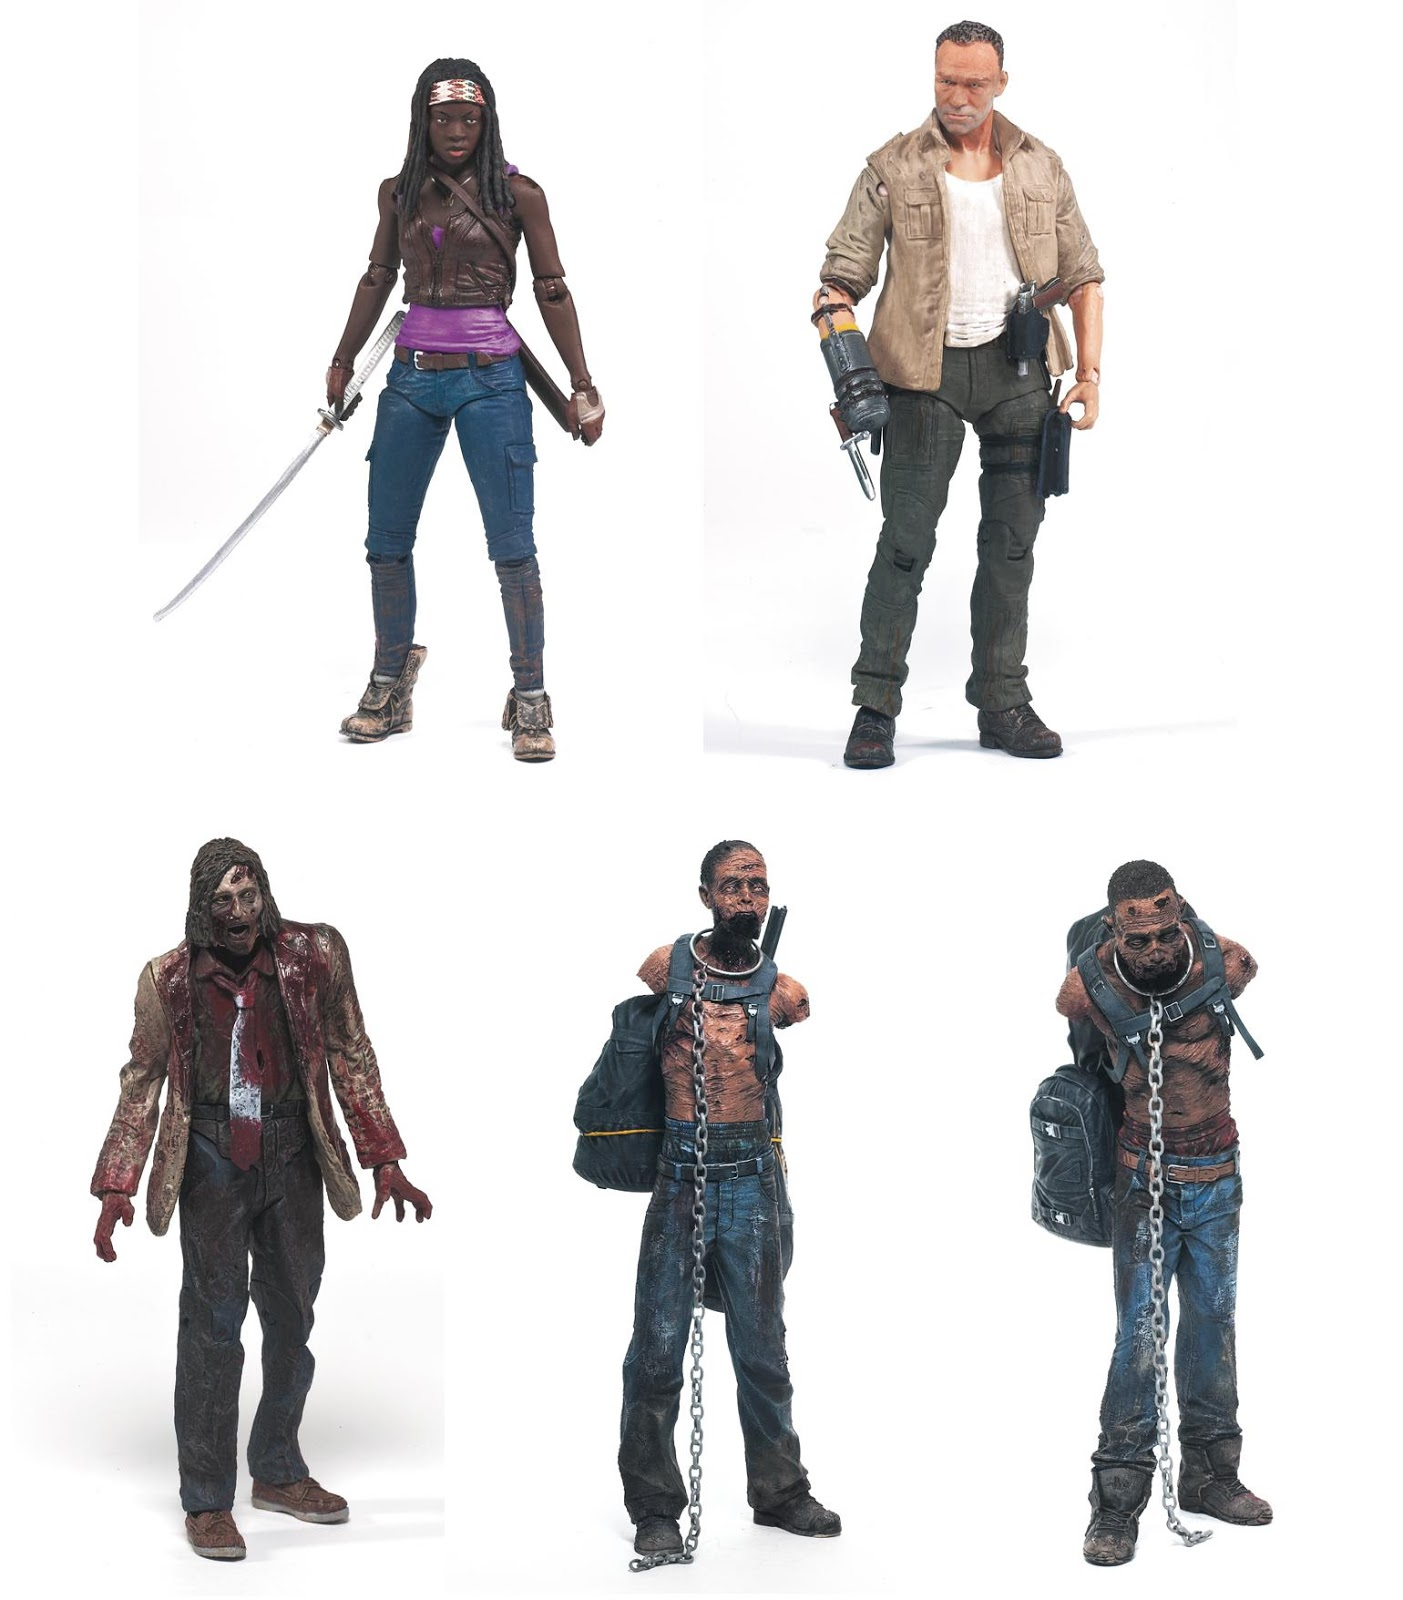 http://4.bp.blogspot.com/-K0NQzYK5Uxs/USGmZquIgJI/AAAAAAAAbWI/Q0NqD5esAbQ/s1600/The+Walking+Dead+Television+Series+3+Action+Figures+by+McFarlane+Toys+-+Michonne%252C+Merle+Dixon%252C+Autopsy+Zombie%252C+Michonne%25E2%2580%2599s+Zombie+Pet+1+%2526+Michonne%25E2%2580%2599s+Zombie+Pet+2.jpg